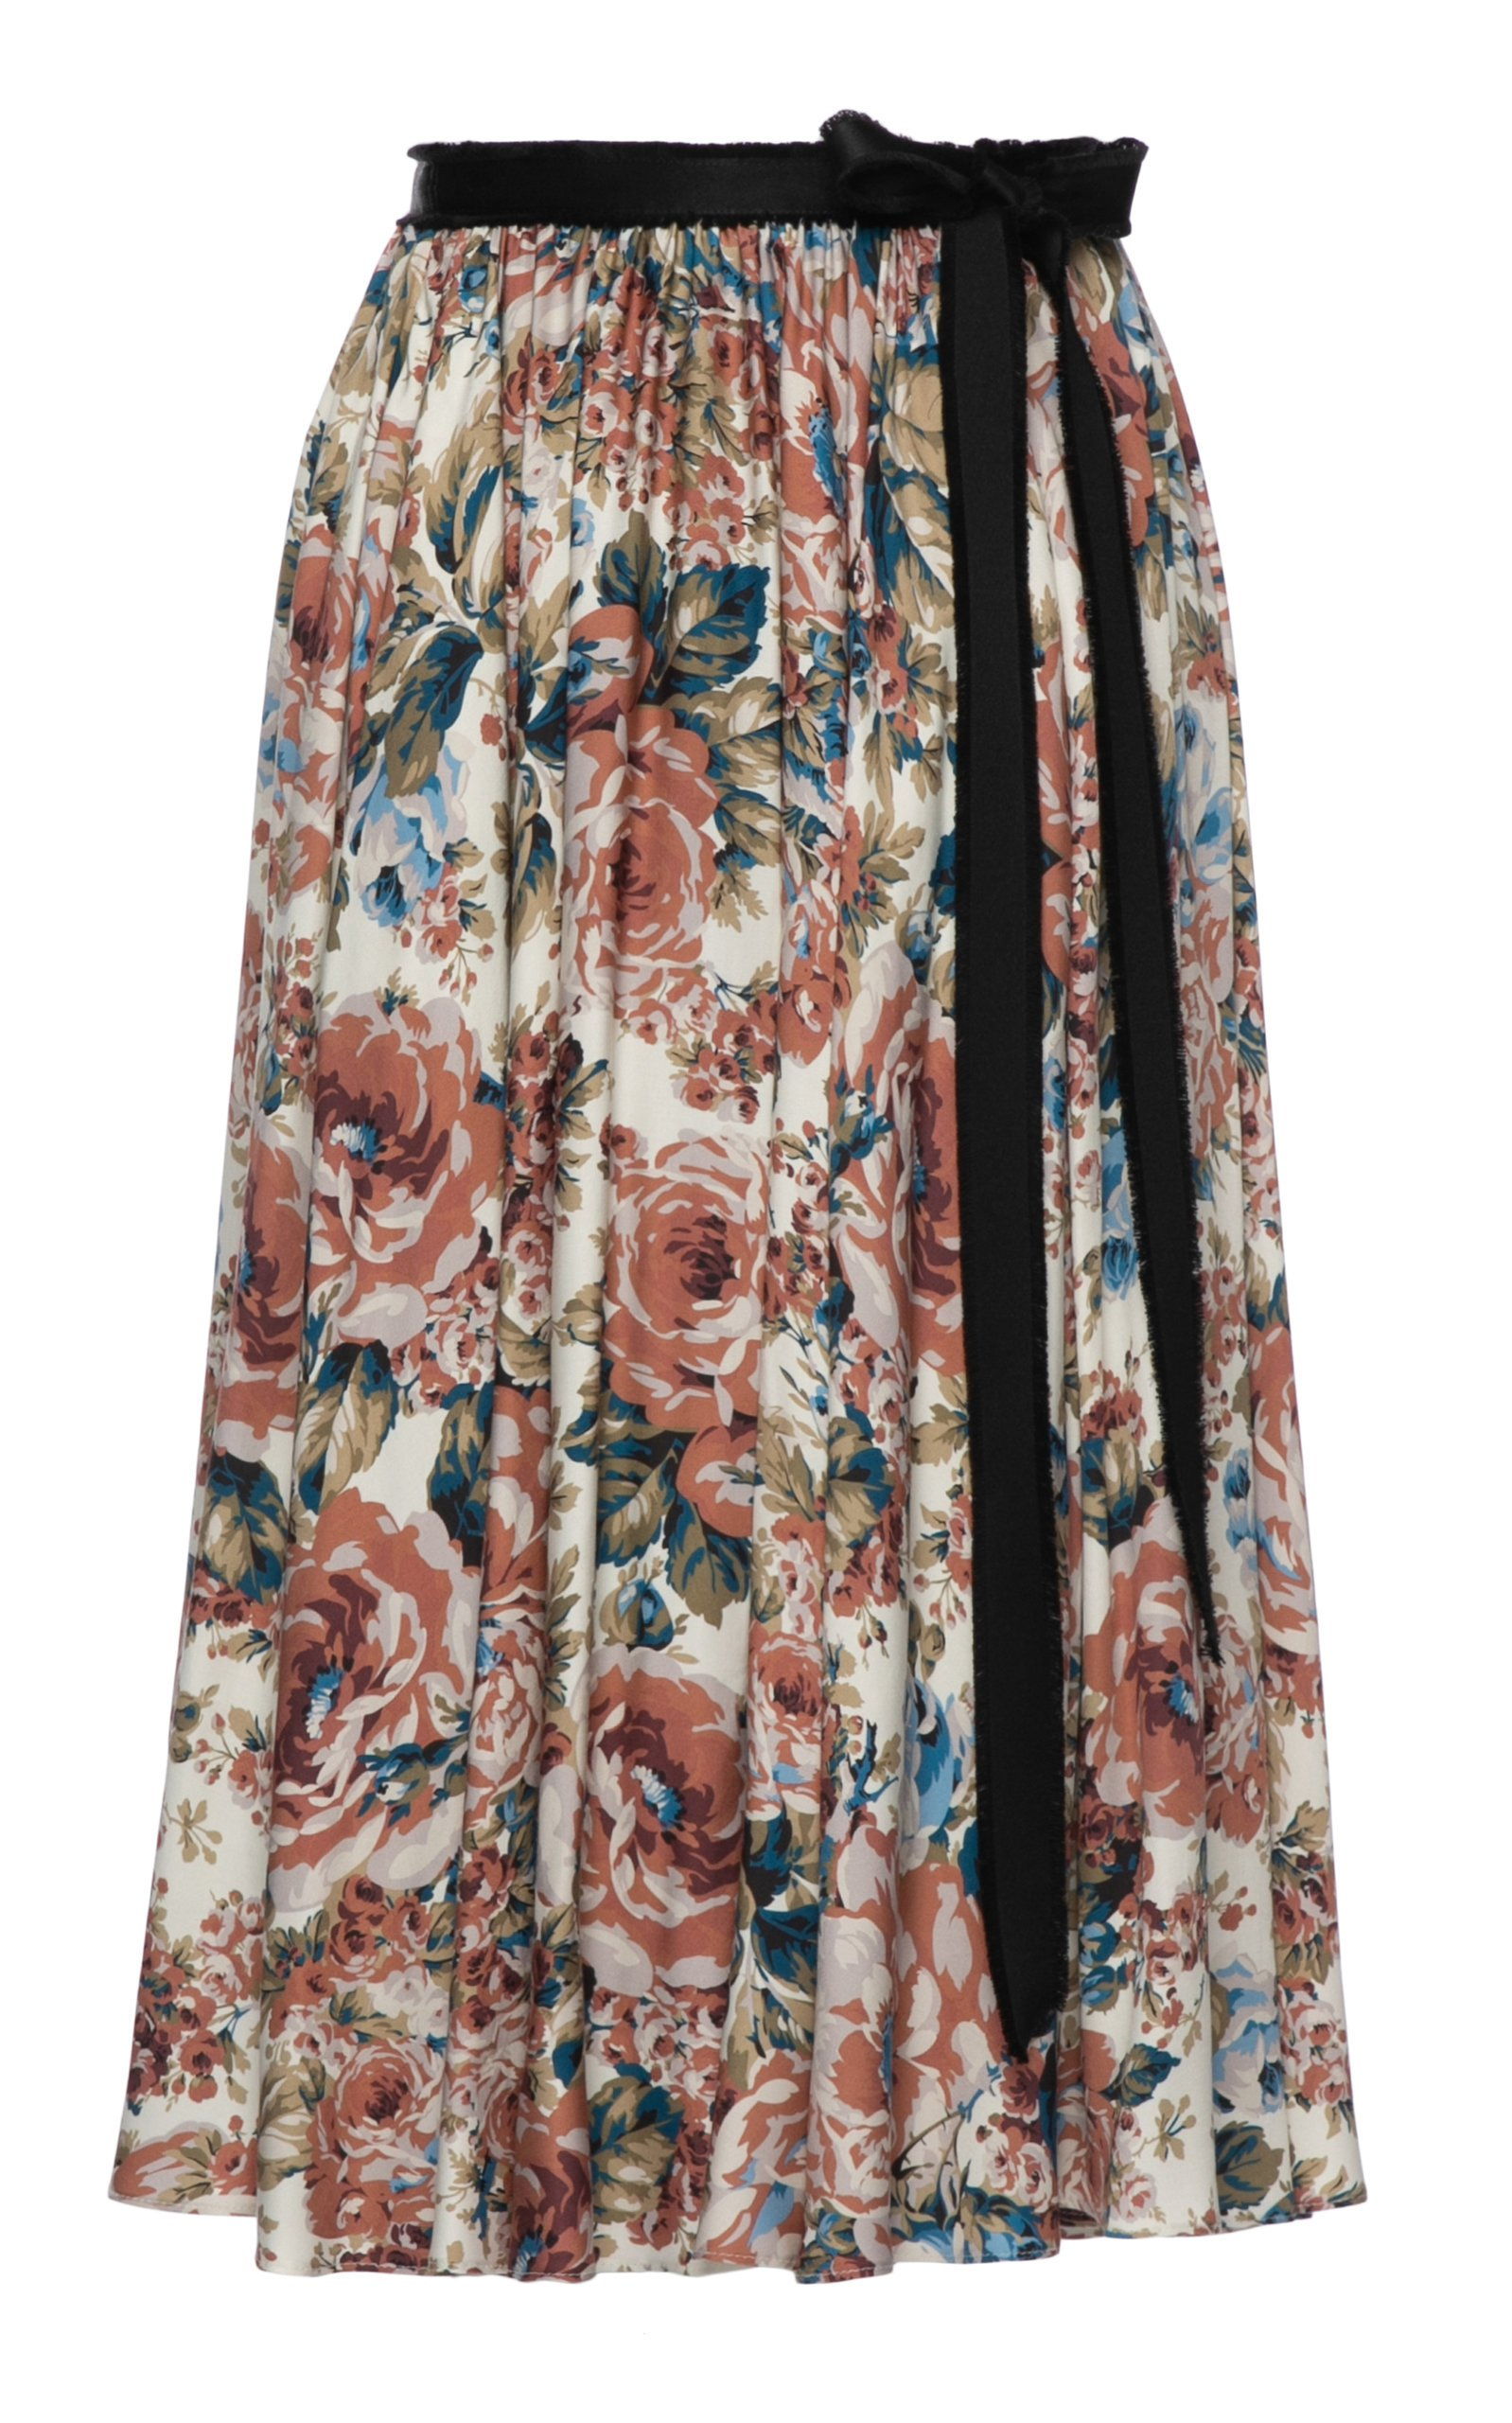 Lena Hoschek Addiction Floral Midi Skirt